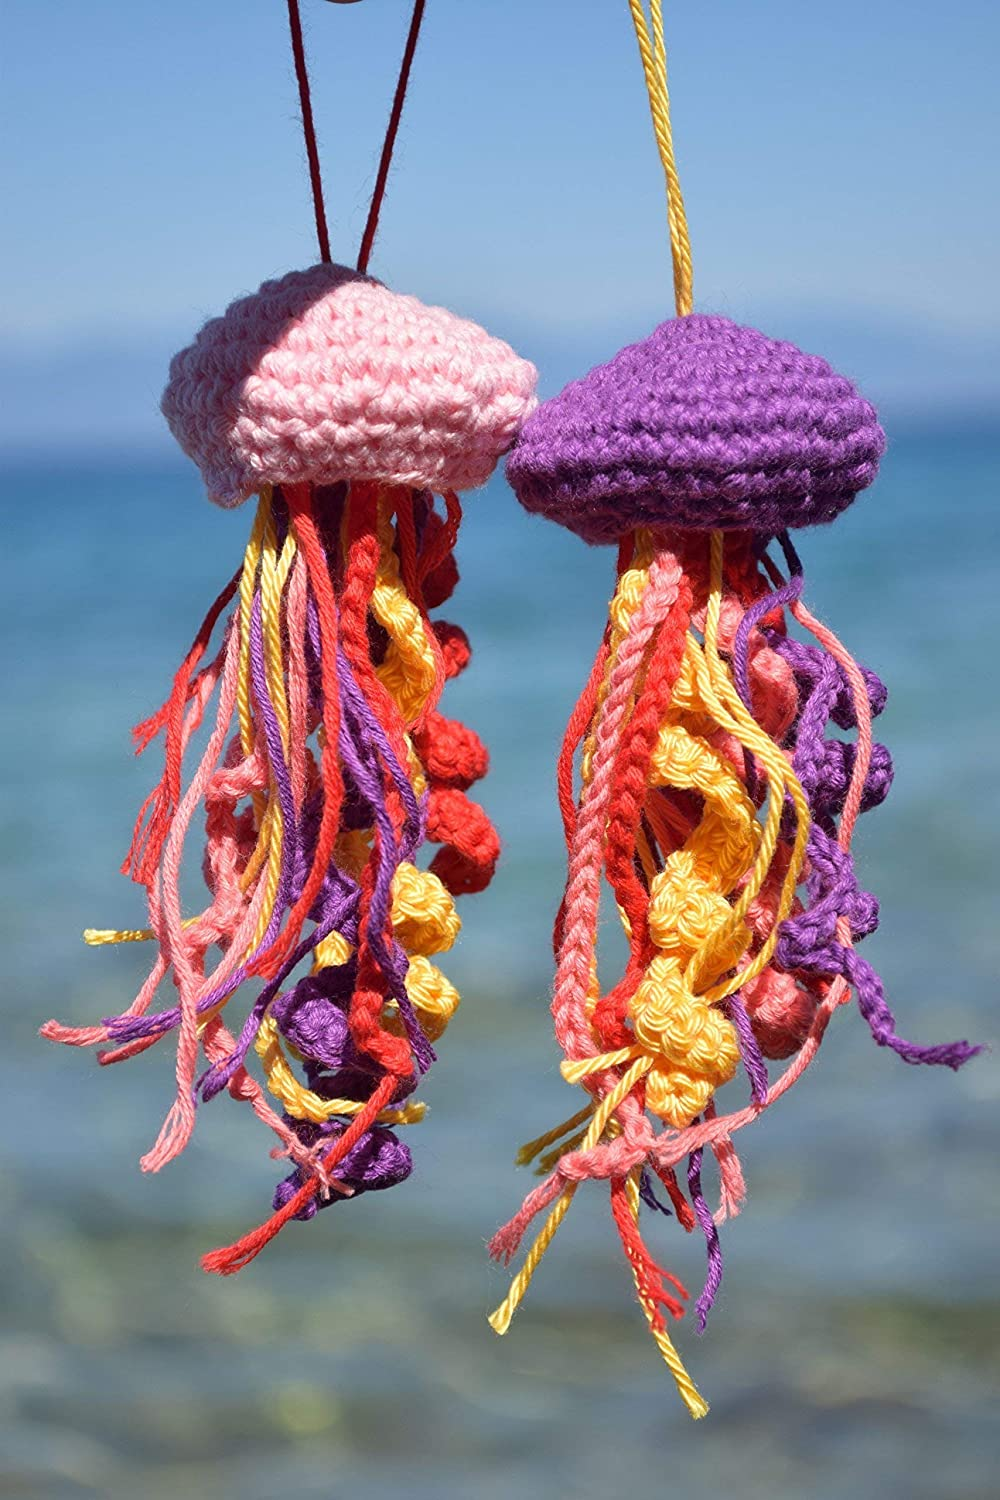 Happy jellyfish amigurumi pattern | Crochet patterns amigurumi ... | 1500x1000